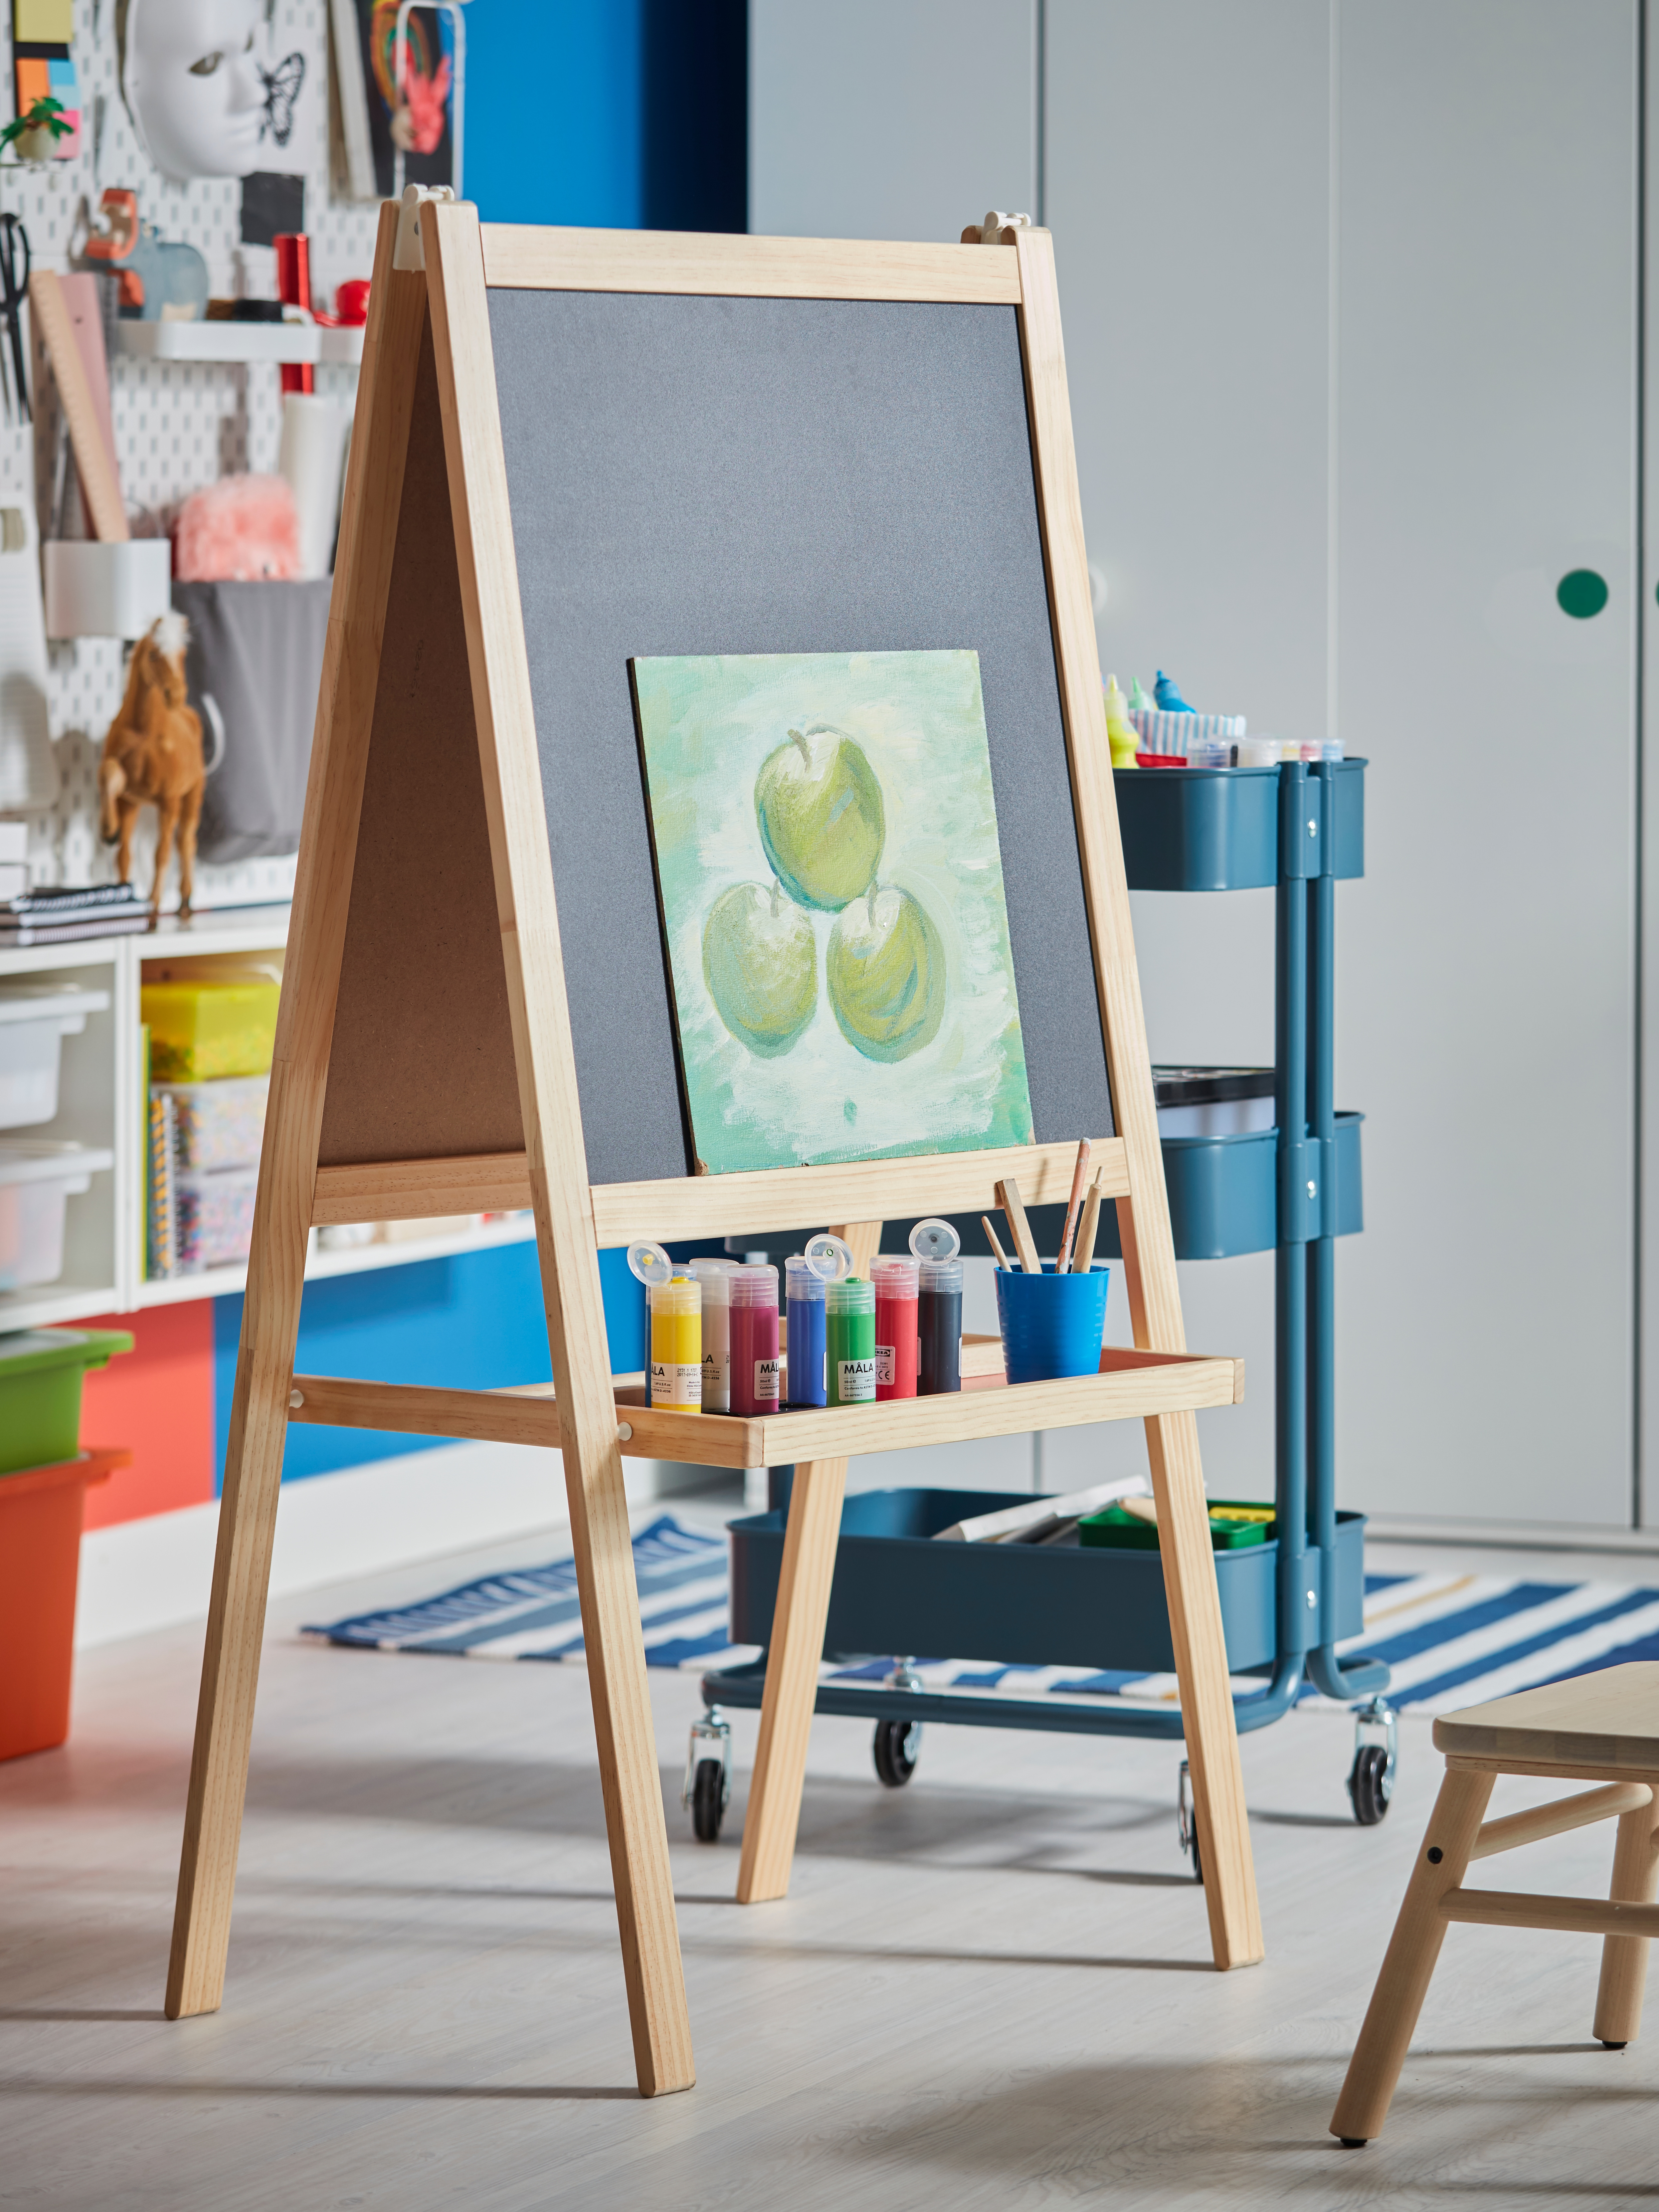 A MÅLA easel in softwood/white with a painting resting on its blackboard side and paint on a tray by a wall of art supplies.